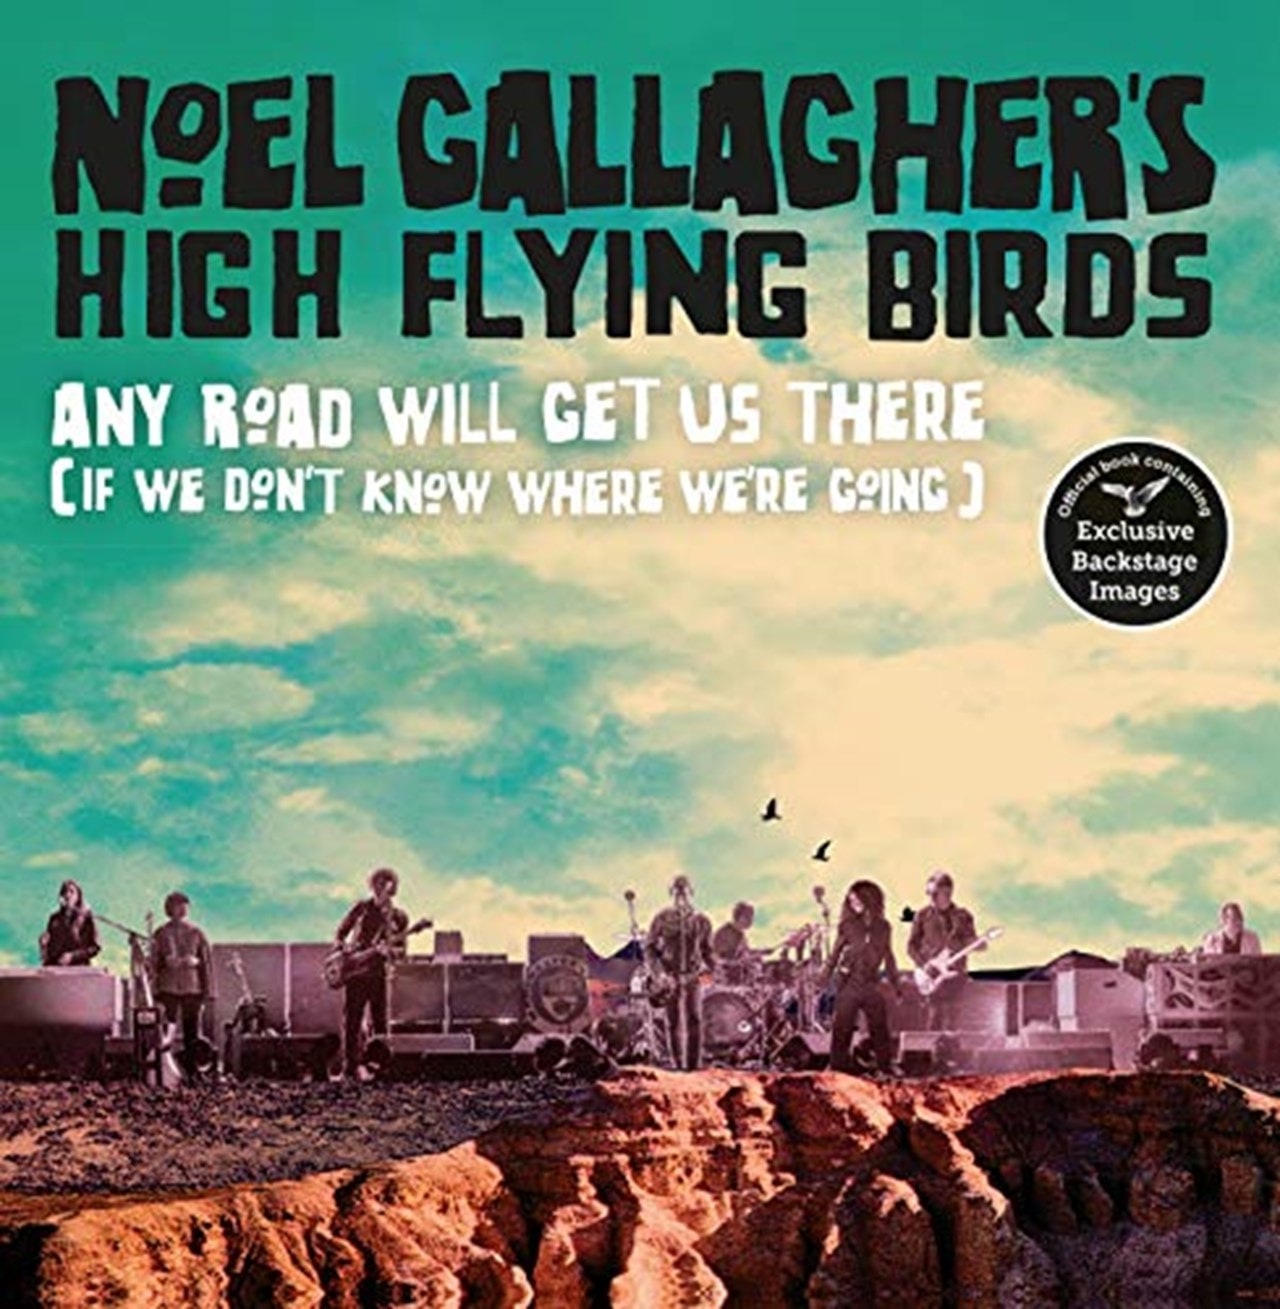 Any Road Will Get Us There (If We Dont Know Where Were Going) Noel Gallagher - 1